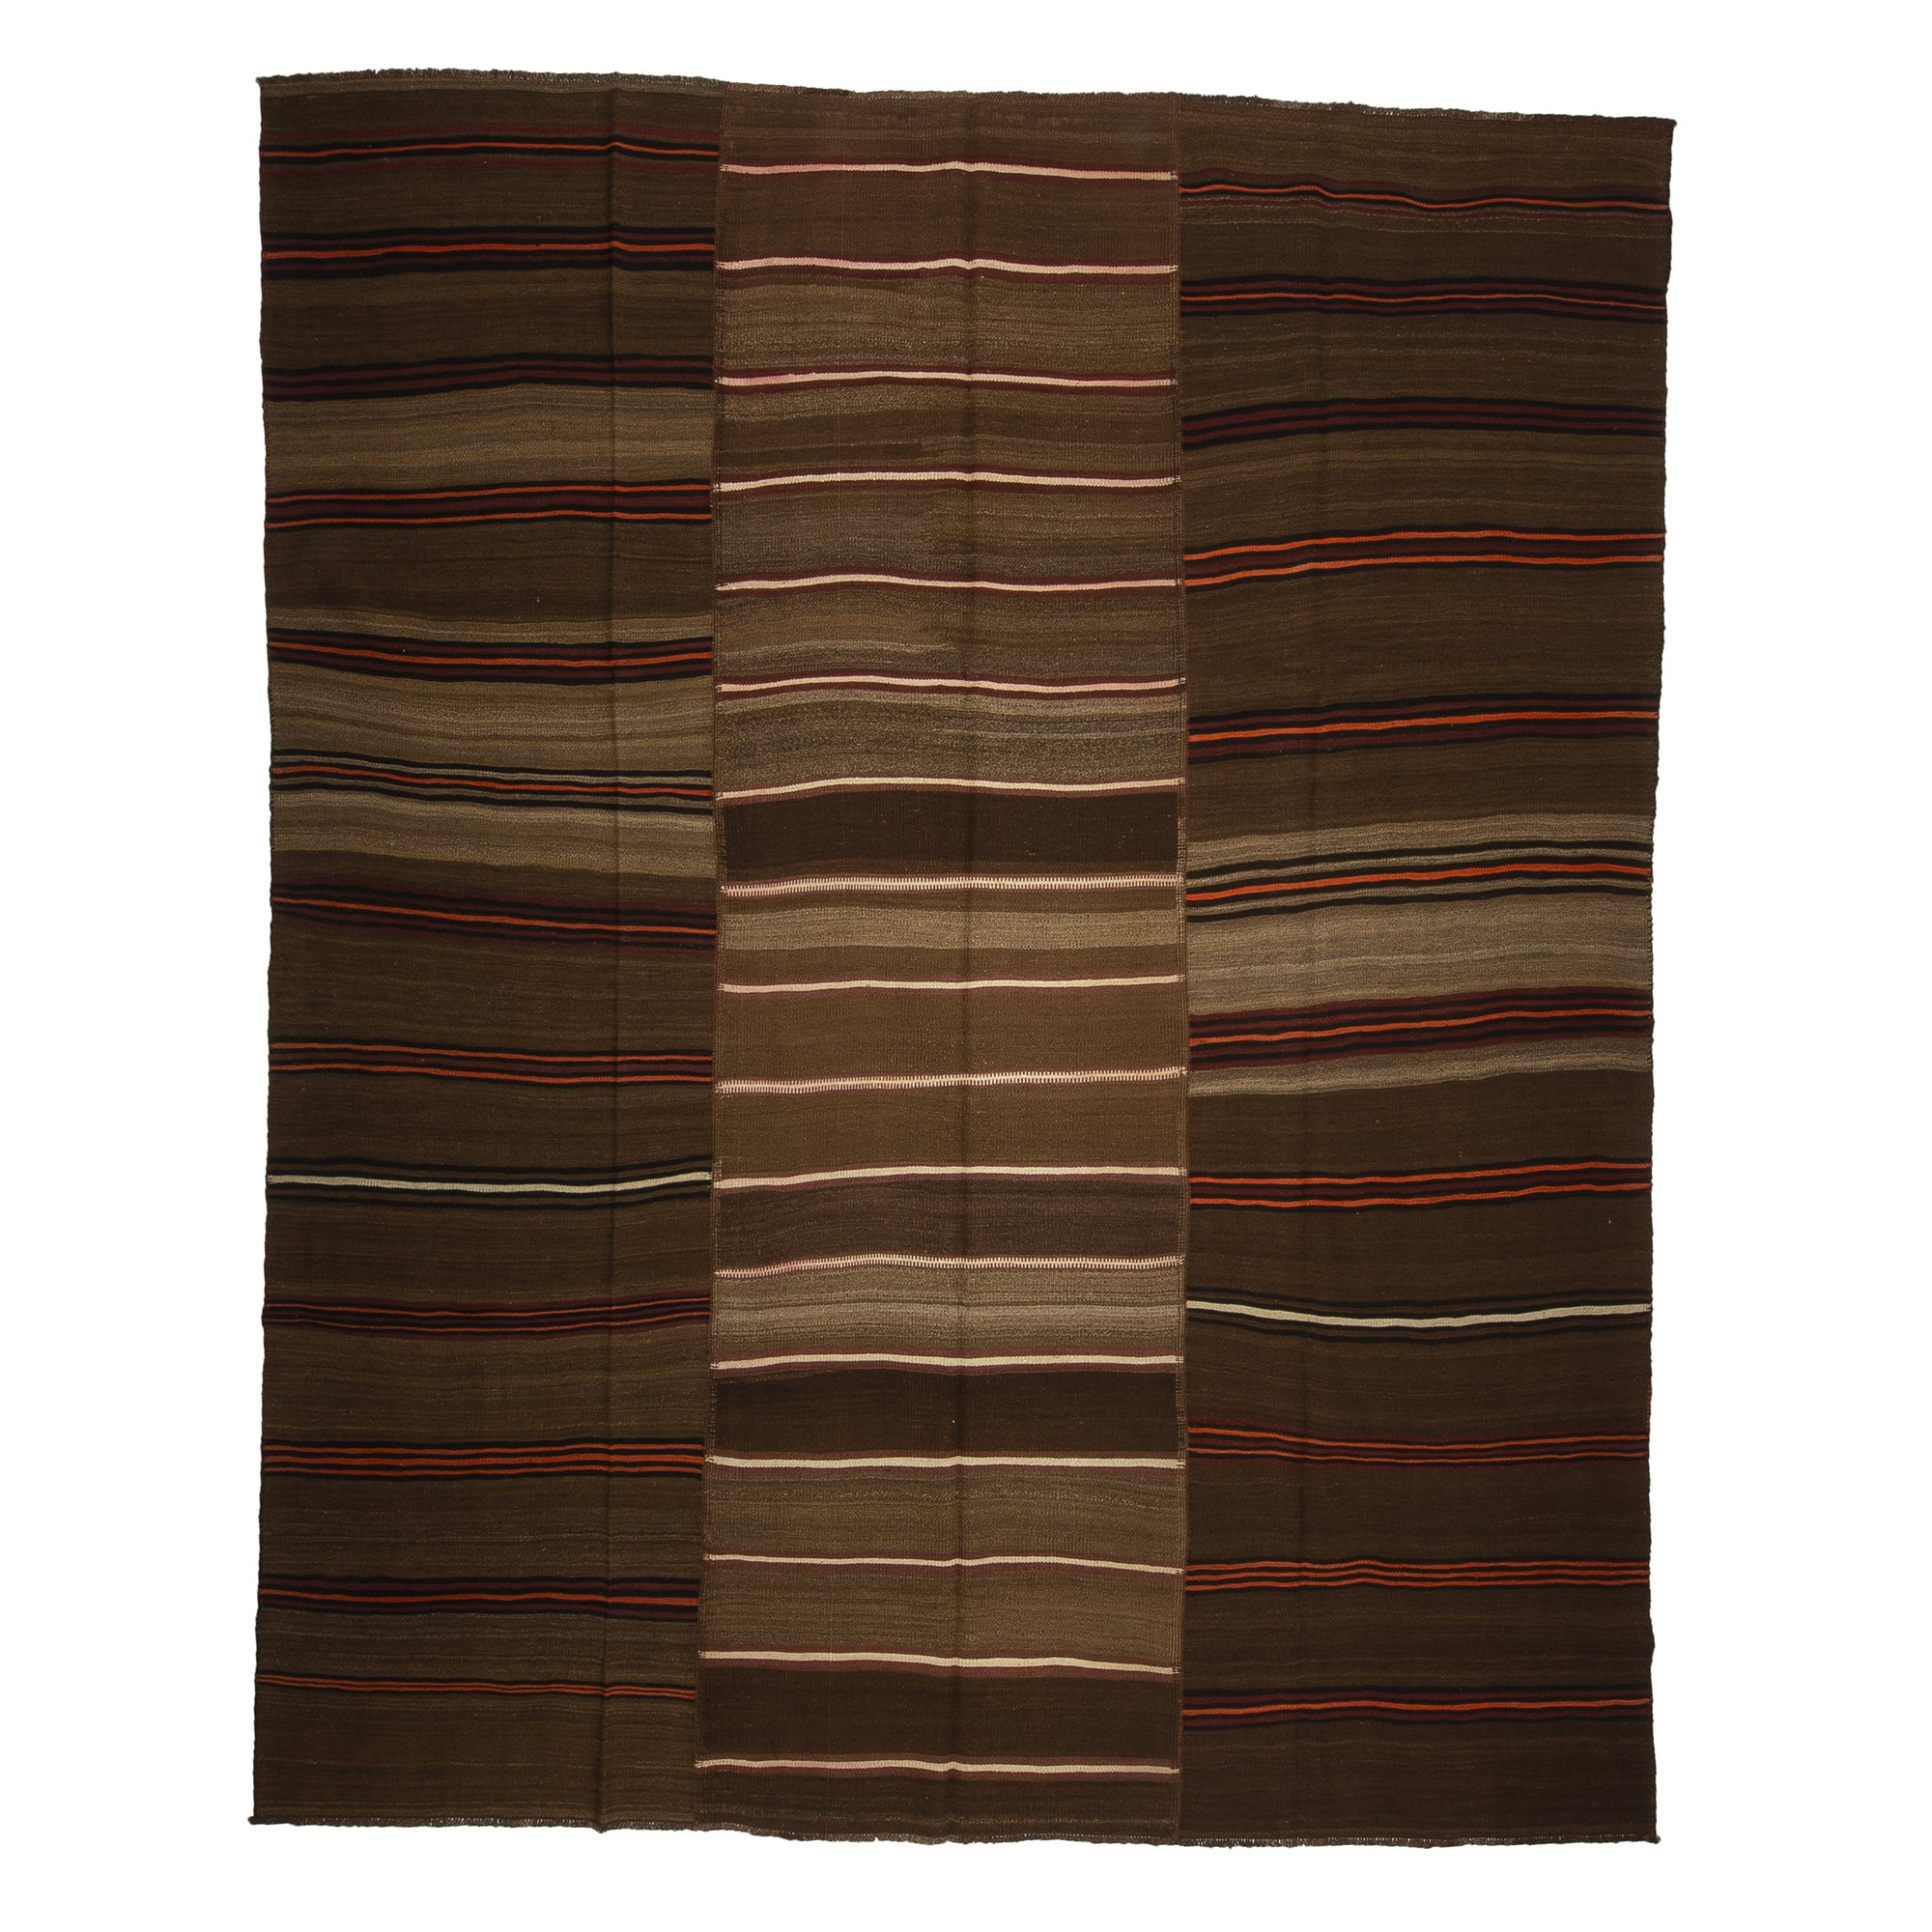 Coffee Brown Wool Turkish Kilim rug 9x11 Feet  277,346 - Turkish Natural Rug